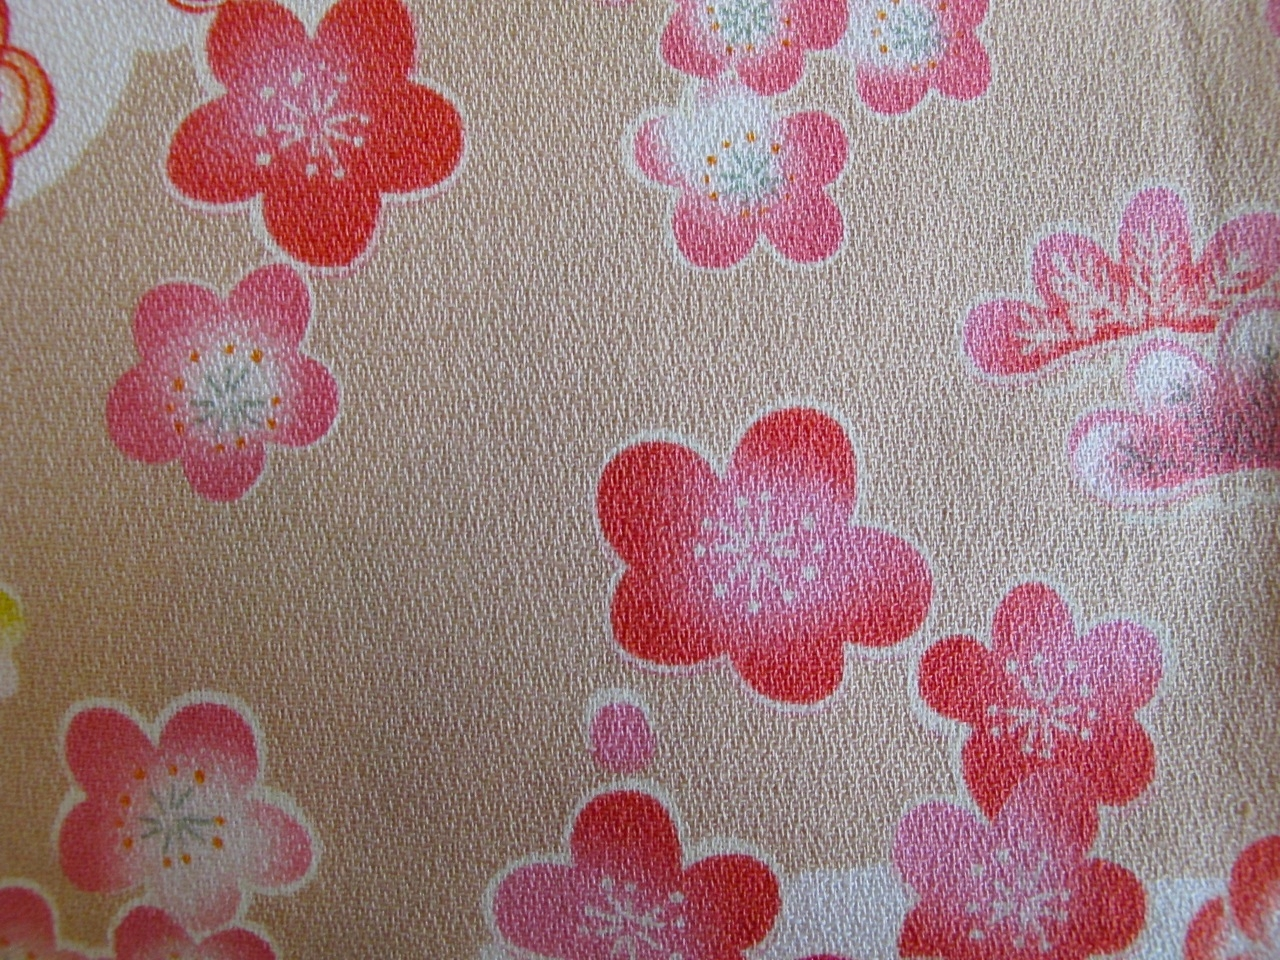 Plum blossoms on fabric.